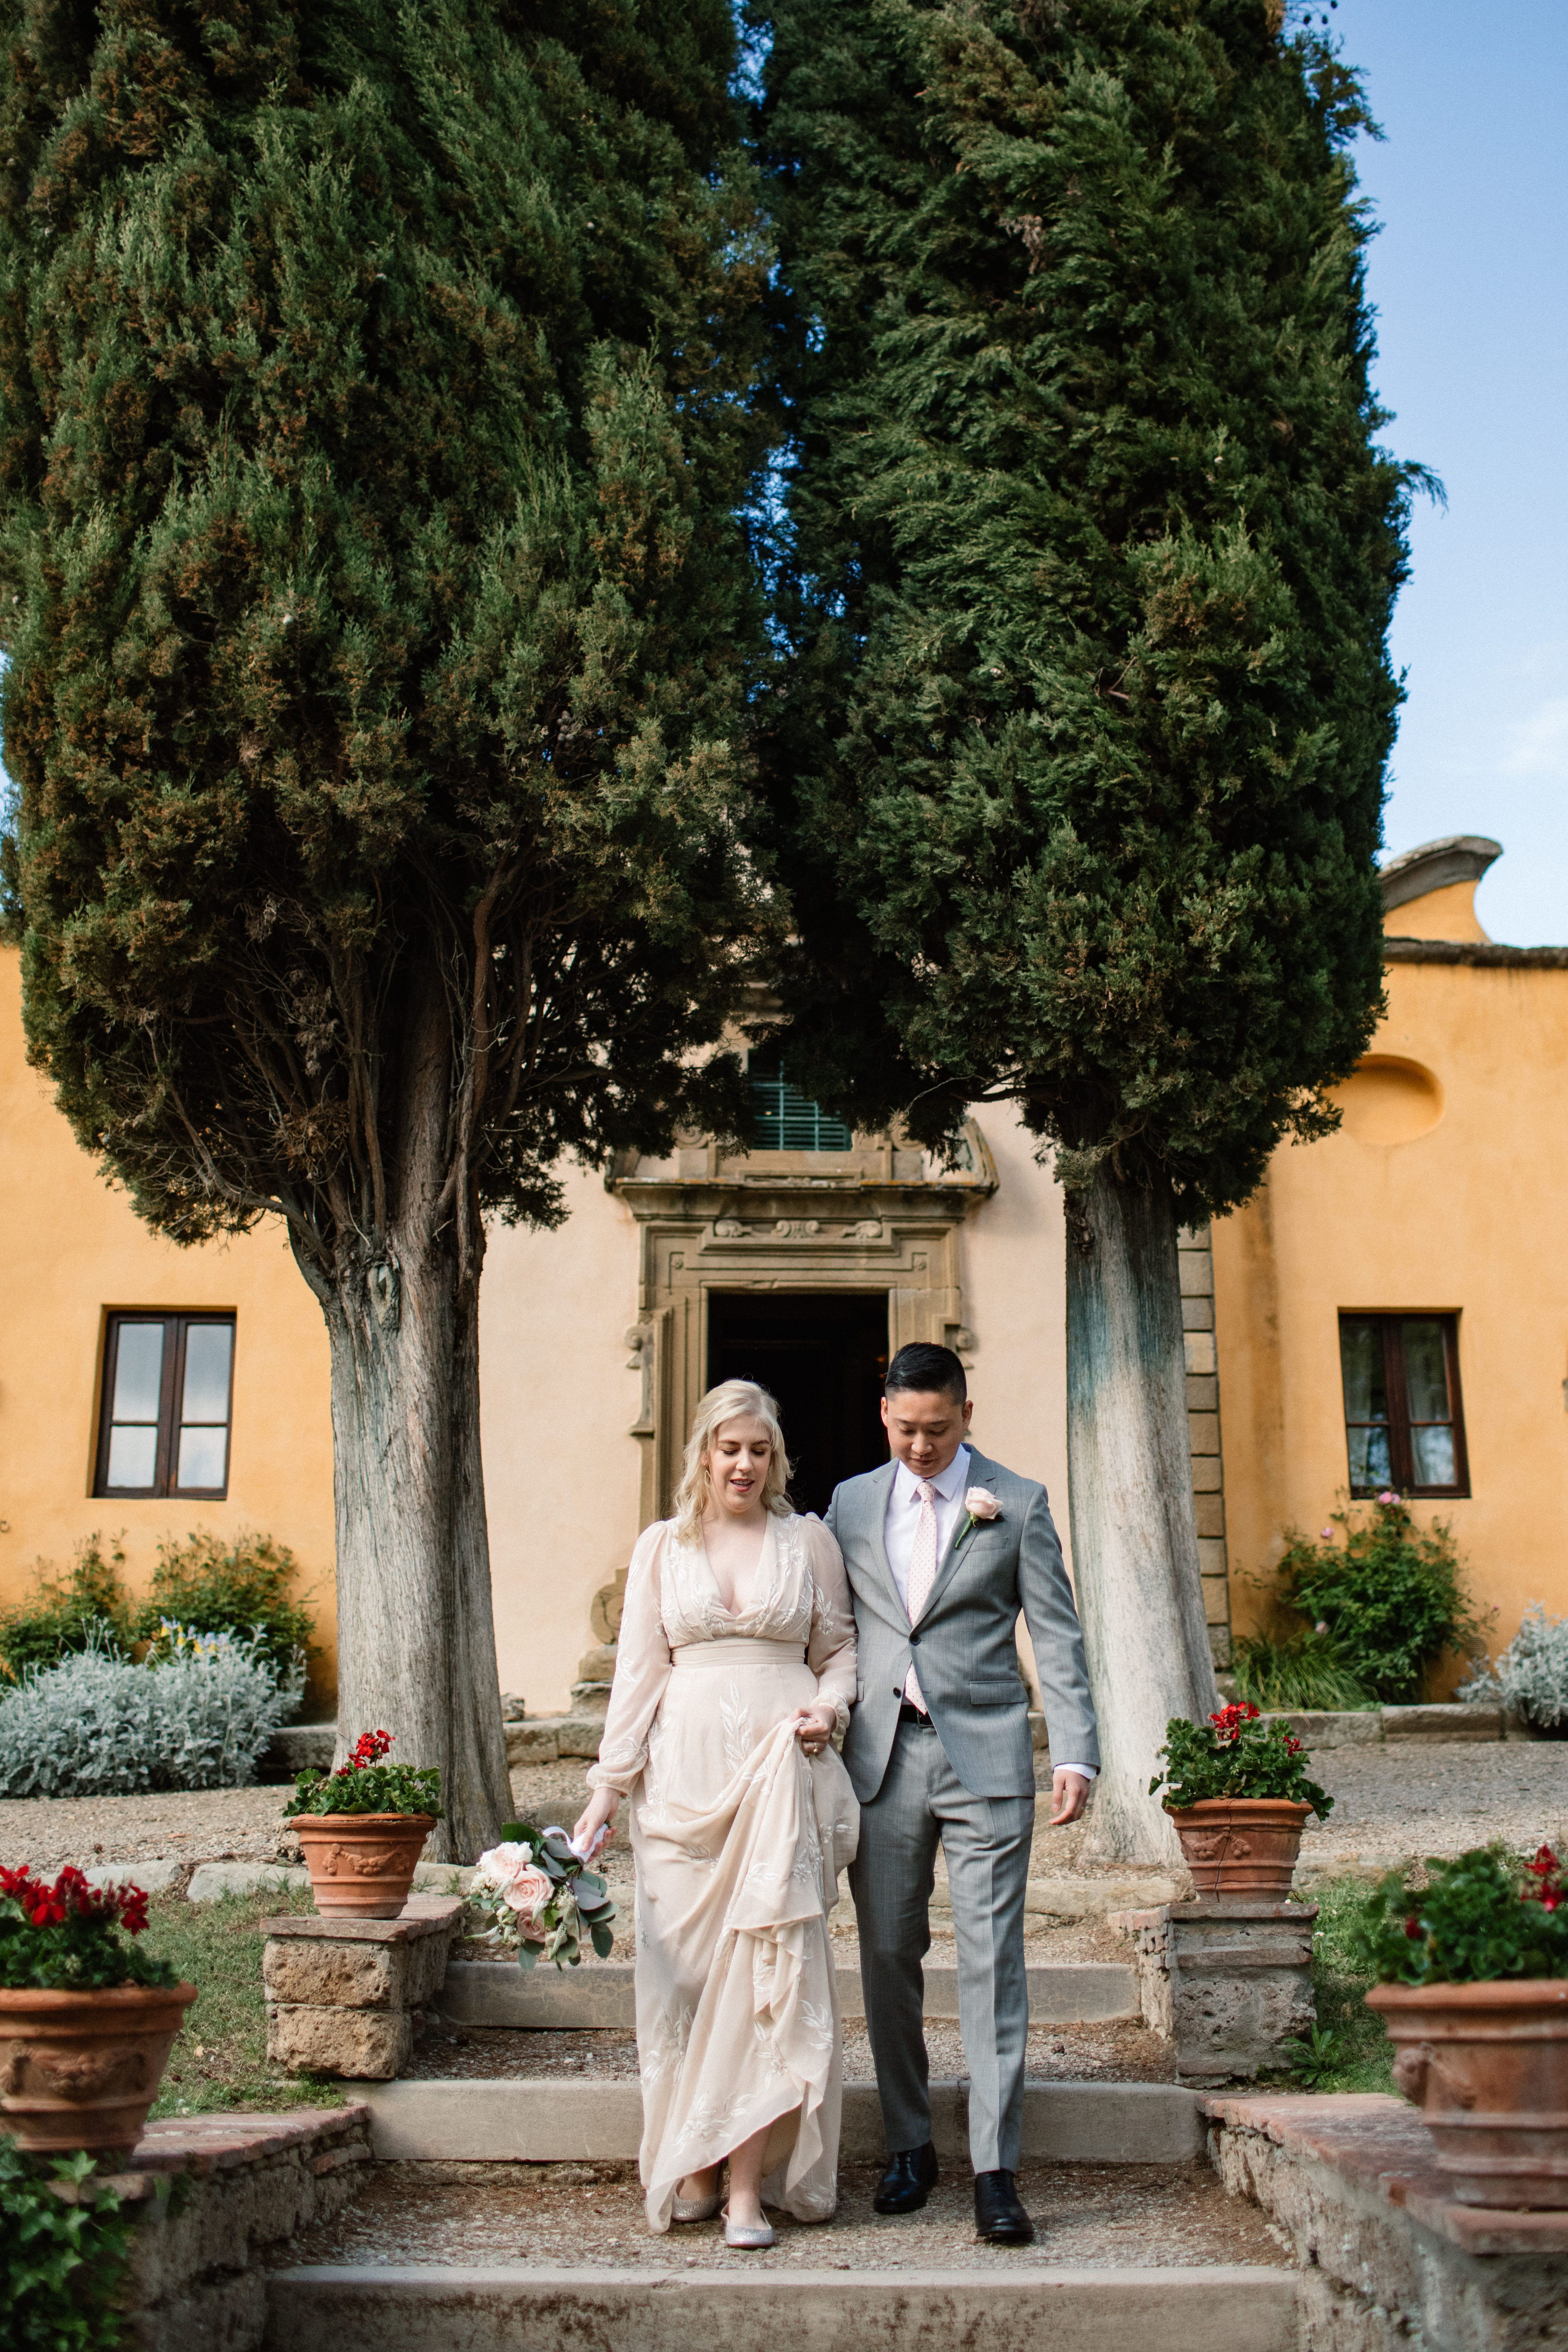 Wedding In Italy Packages For Intimate Destination Weddings In Italy With Images Italy Wedding Romantic Italy All Inclusive Wedding Packages